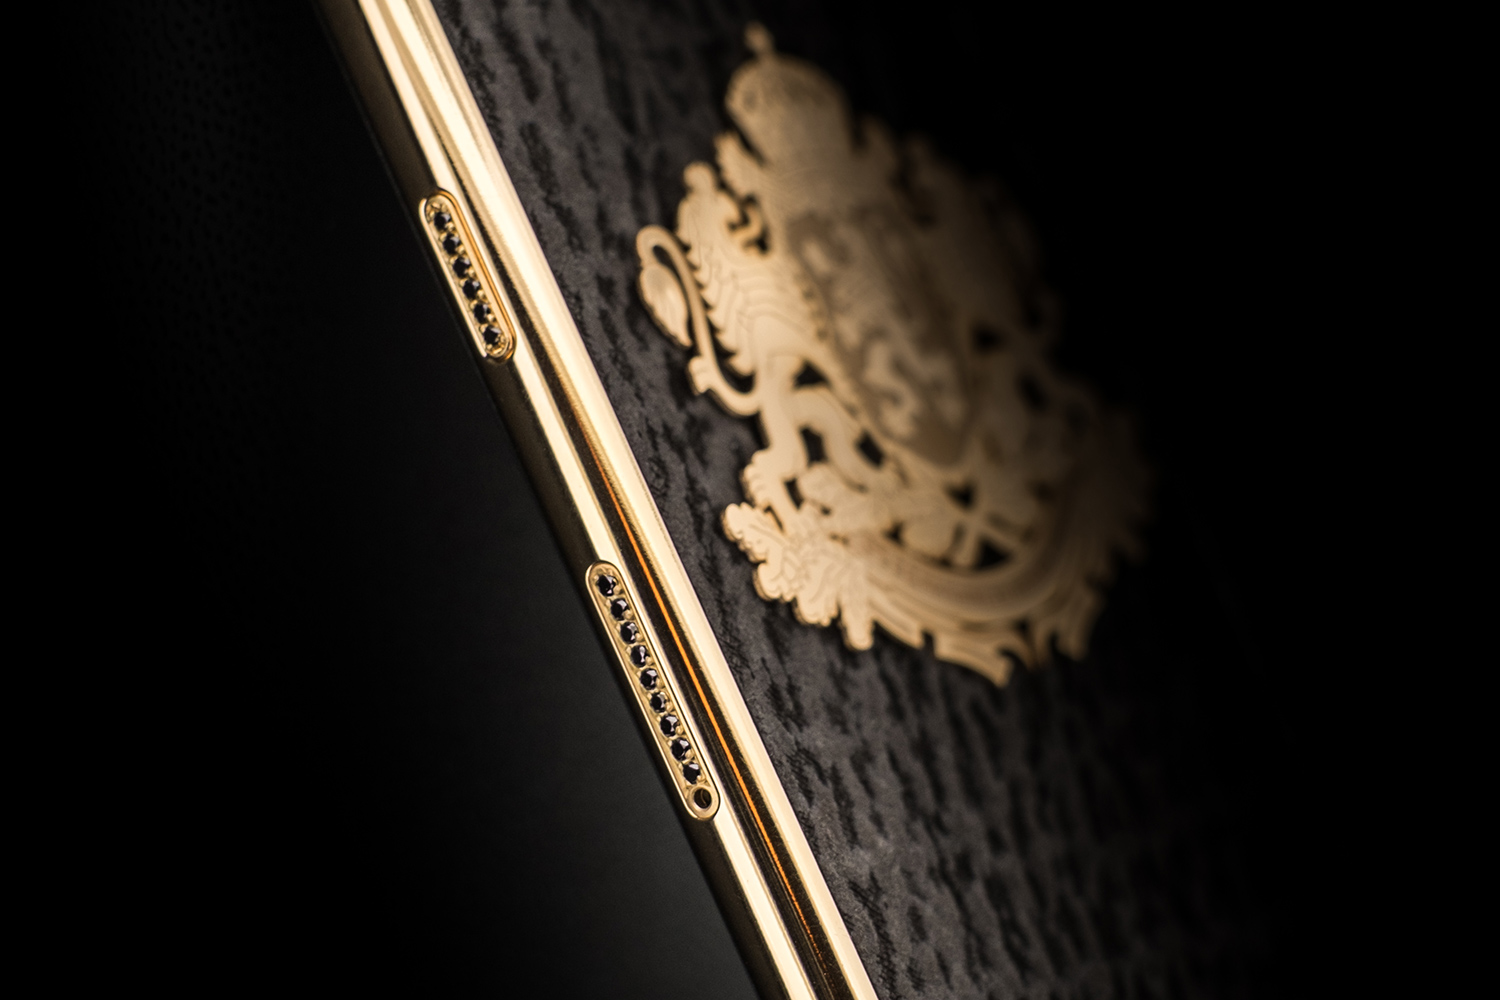 iPhone-8-golden-gadget-black-diamond